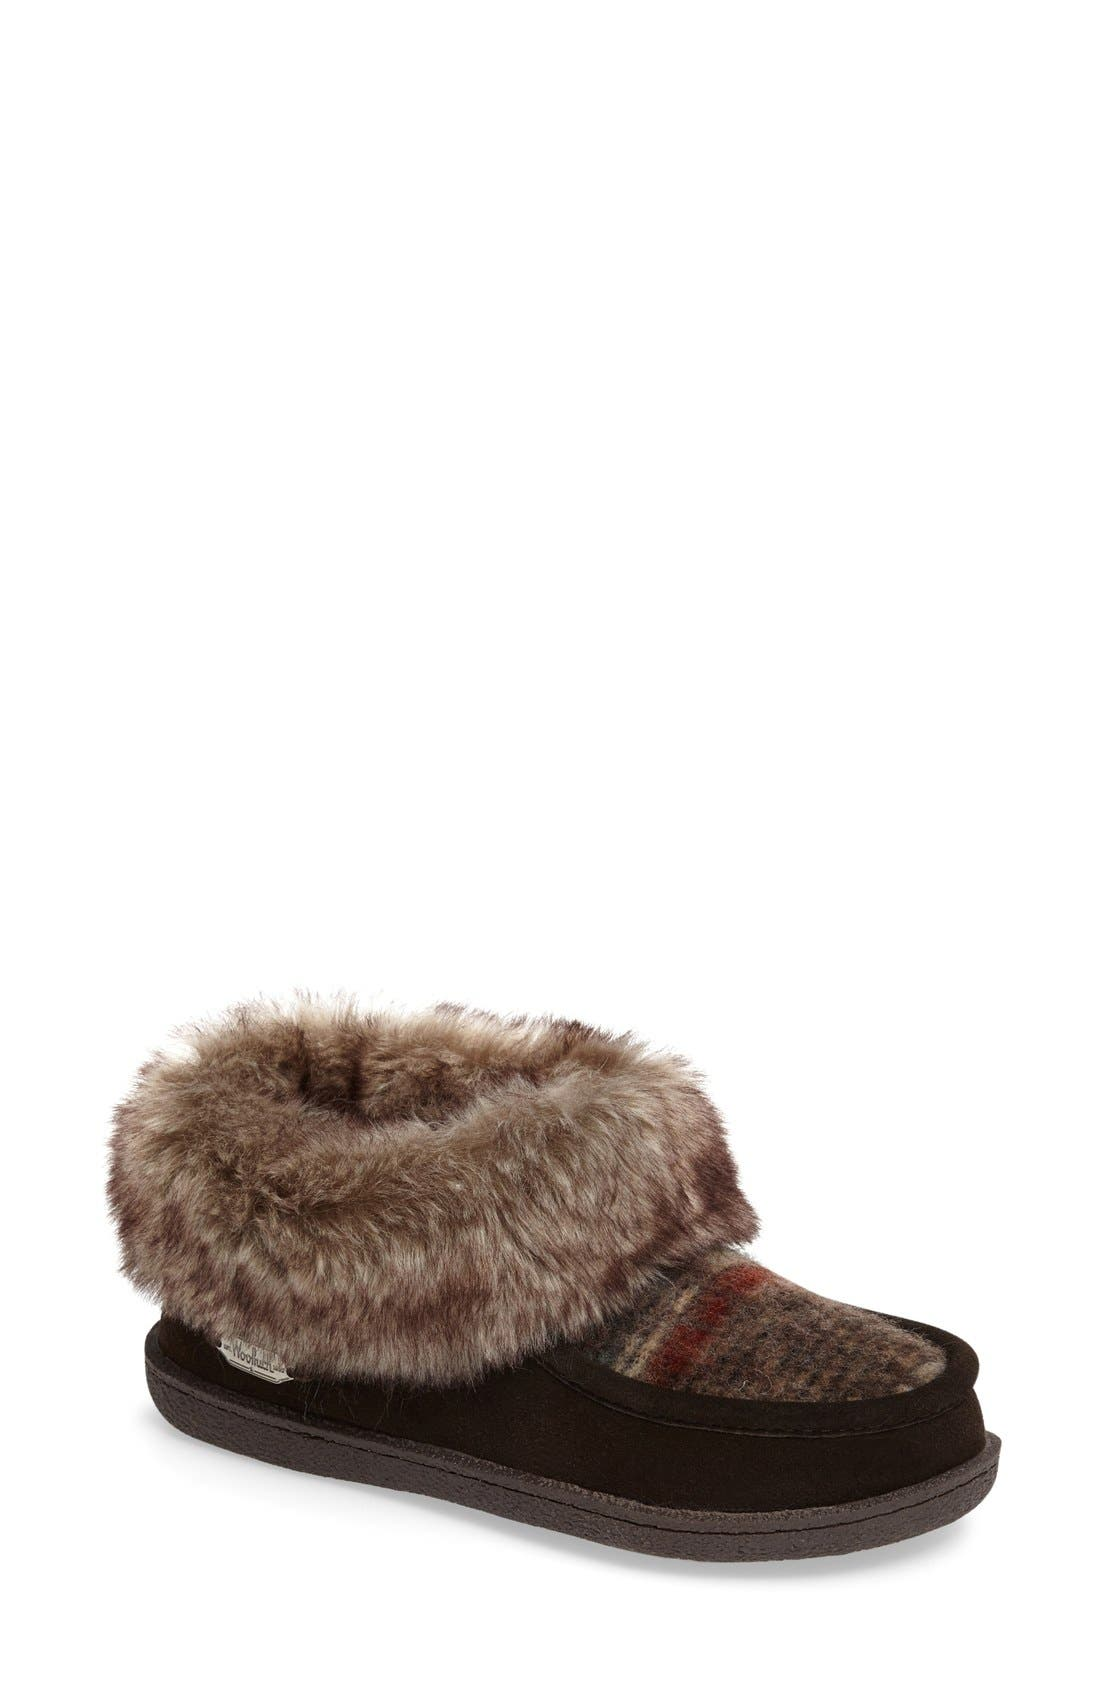 Autumn Ridge Slipper Bootie,                         Main,                         color, Java/ Blanket Wool